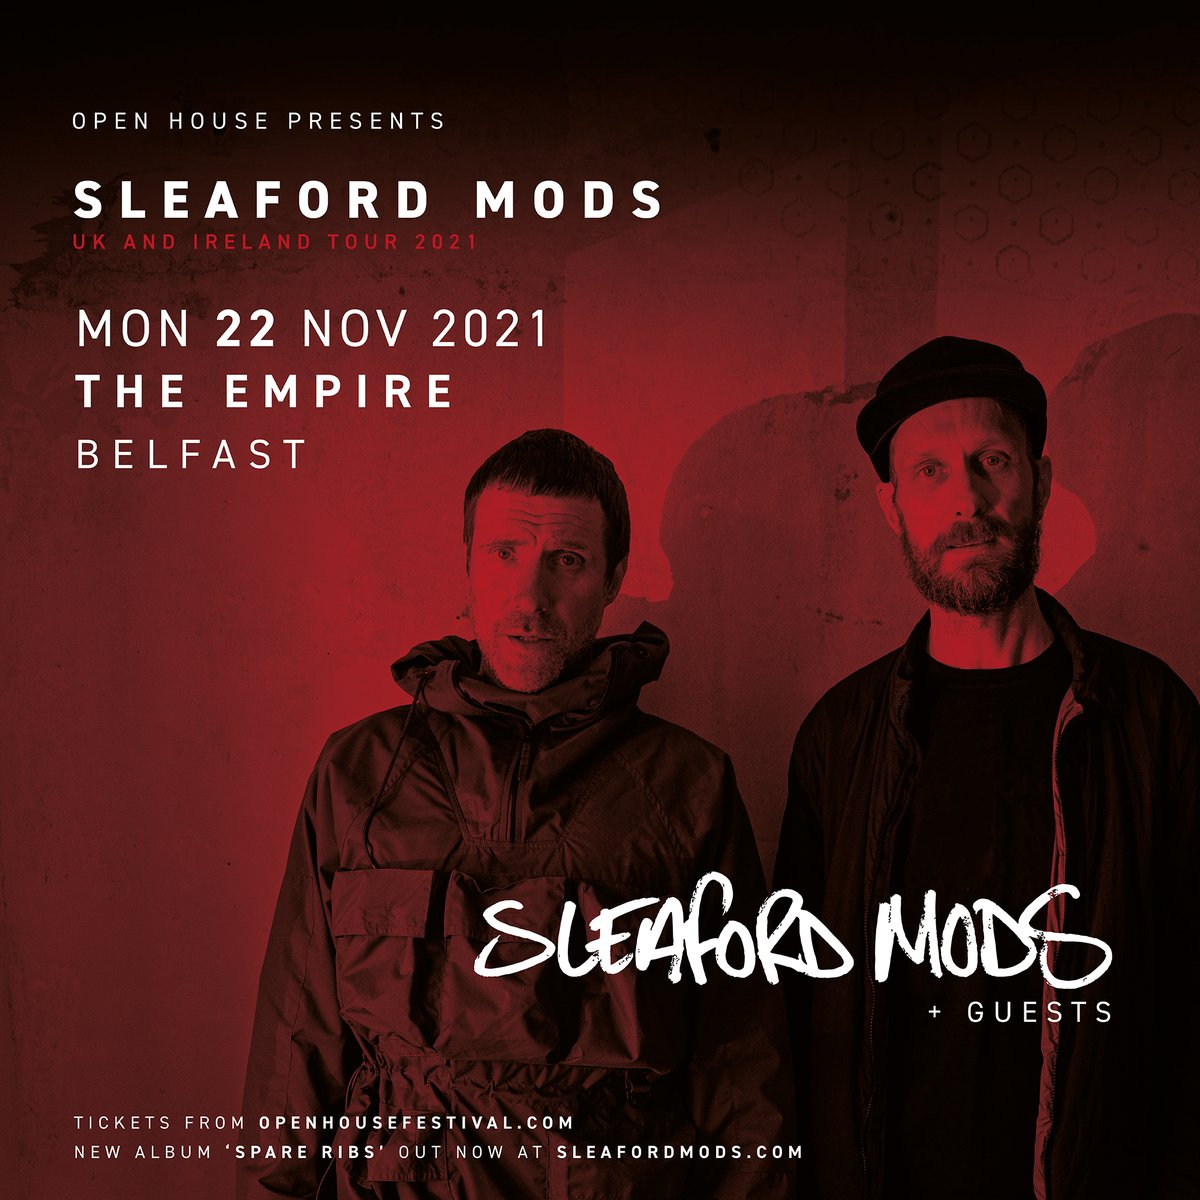 Gentle reminder... tickets for @sleafordmods at @belfastEmpire go on sale at 10am from openhousefestival.com/year-round-sho…